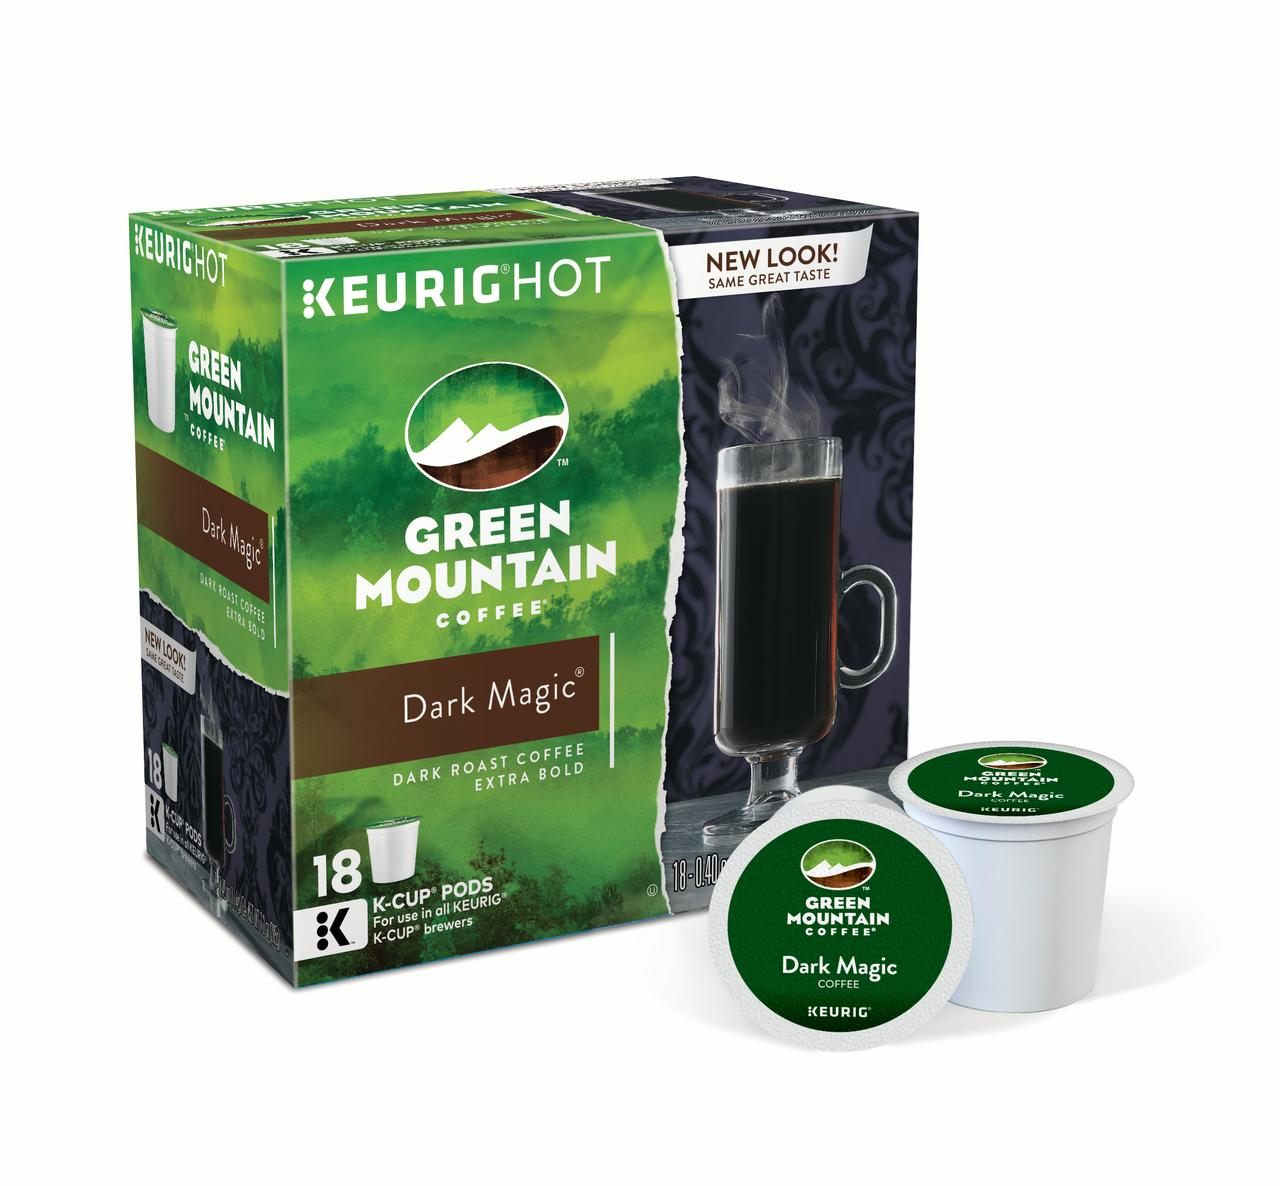 Green Mountain Coffee Dark Magic Keurig Single-Serve K-Cup pods, Dark Roast Coffee, 18